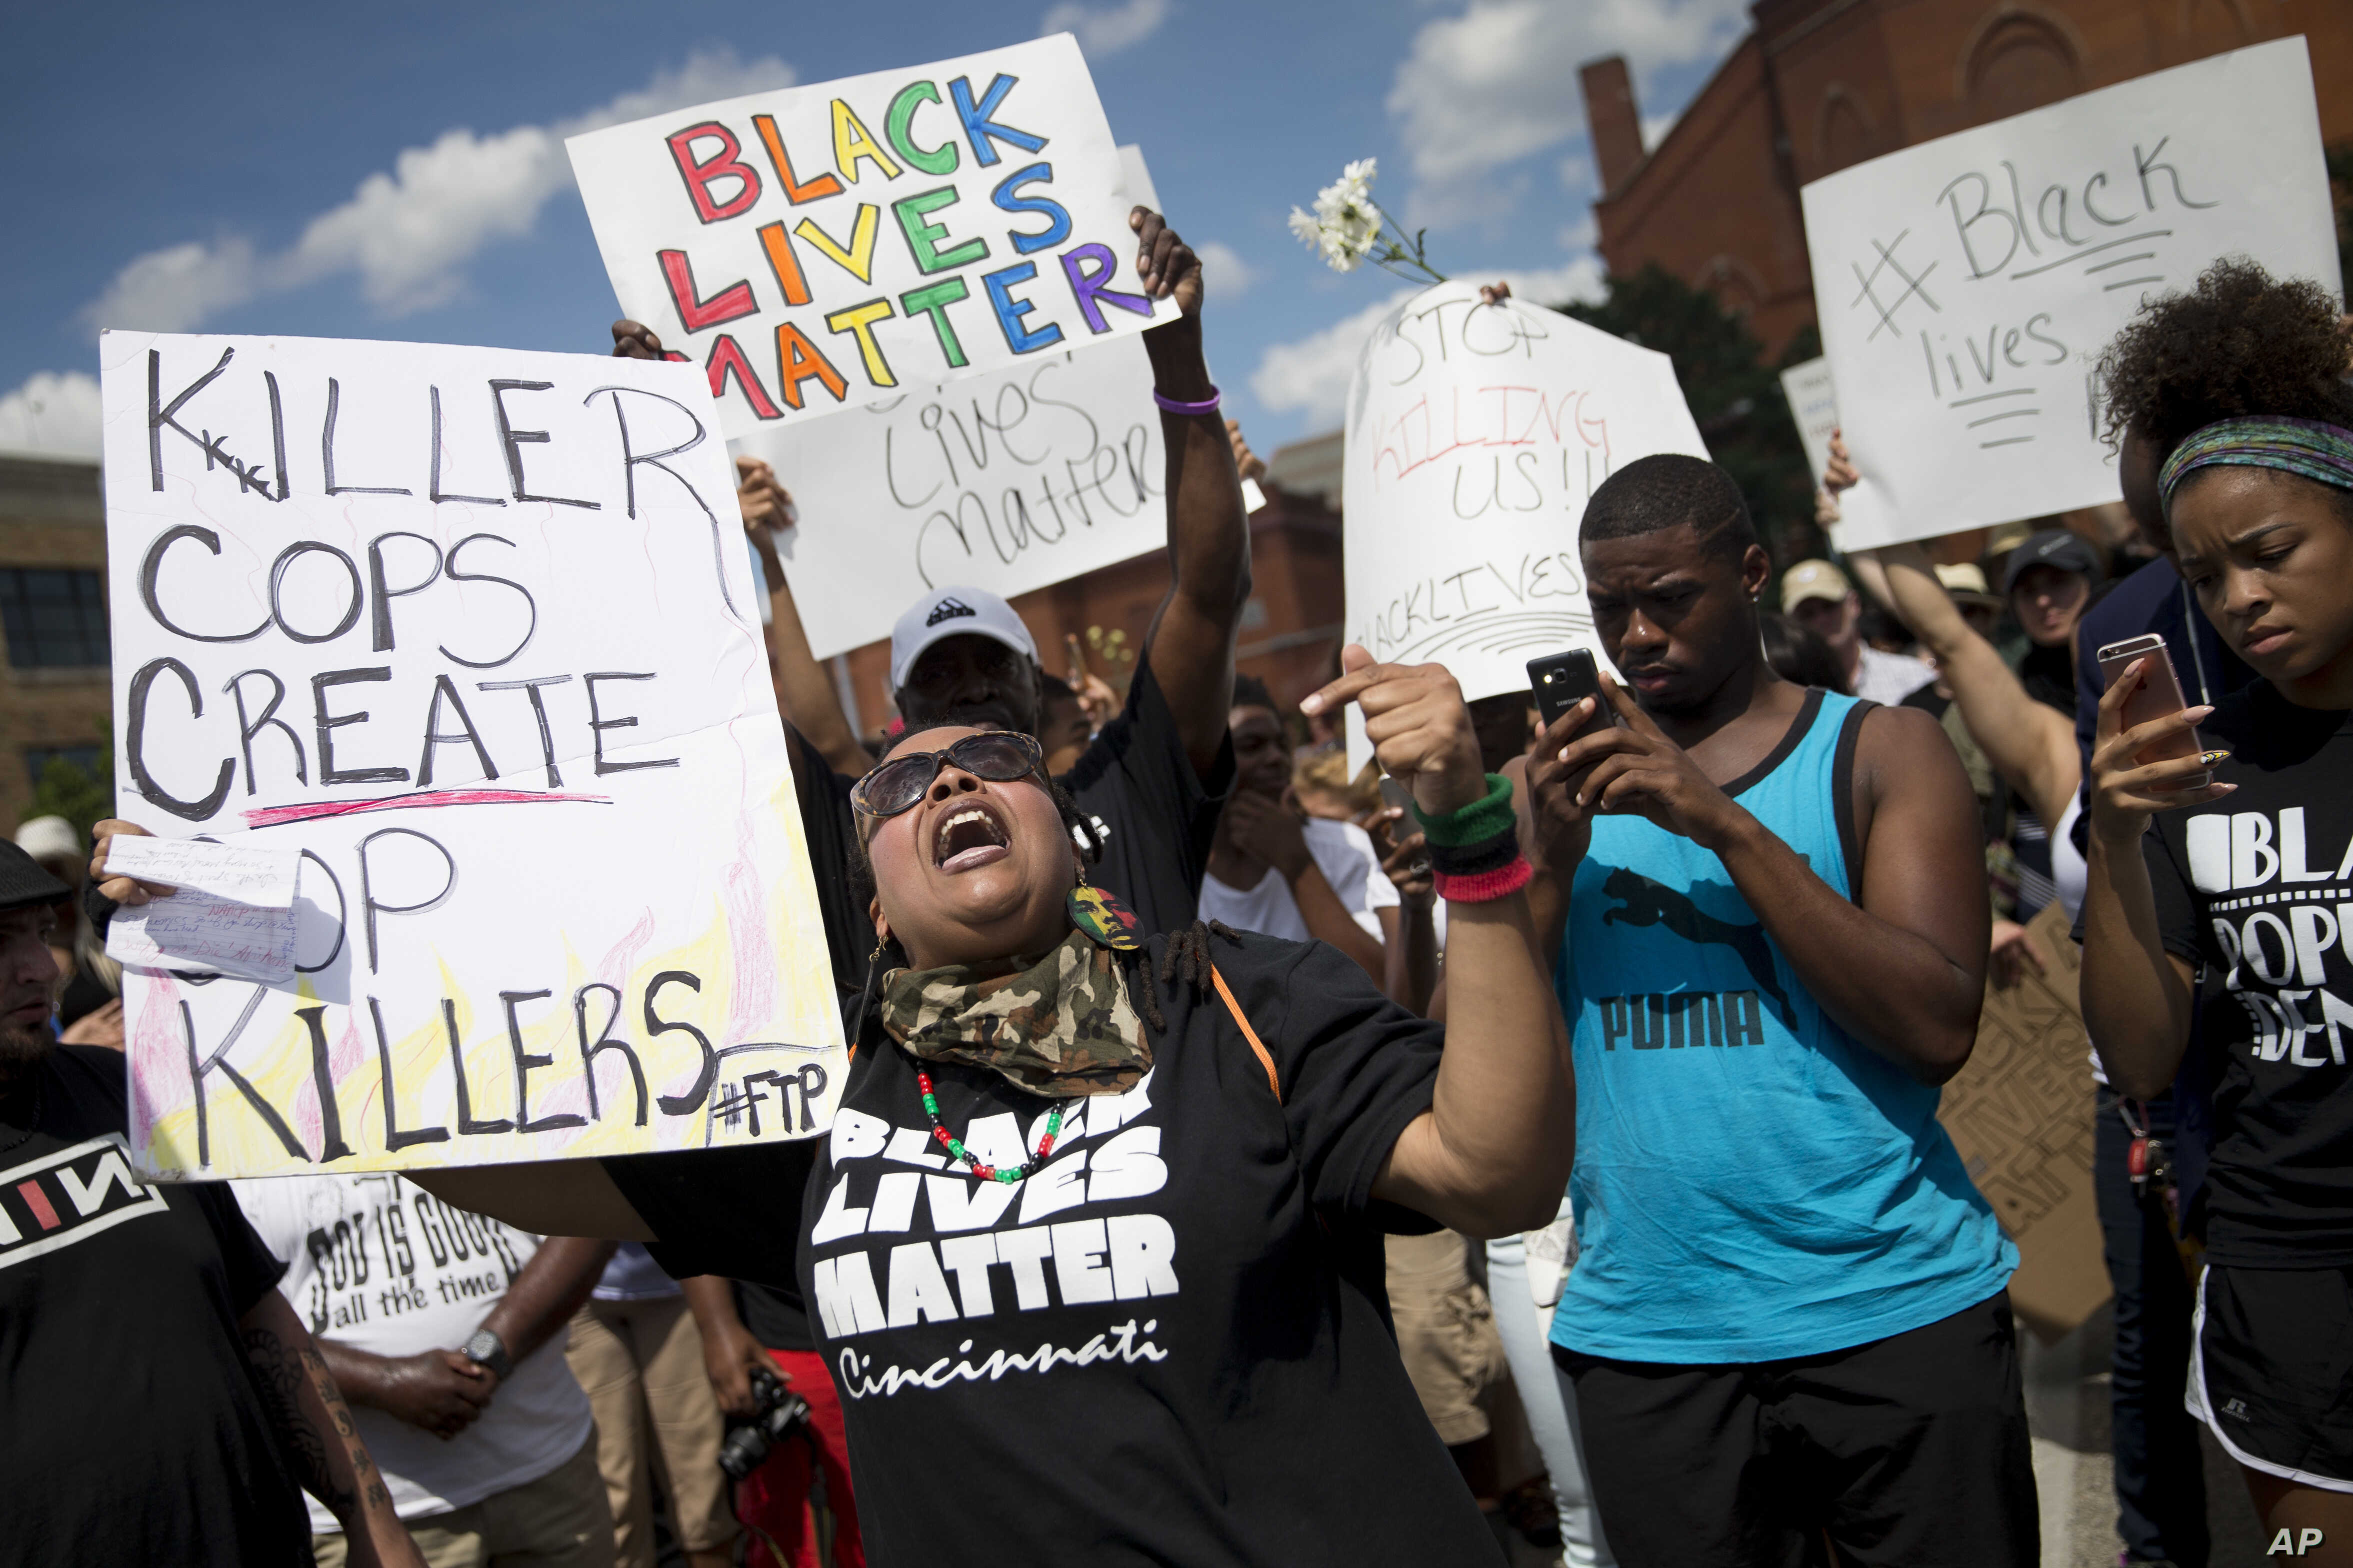 Protestors rally during a Black Lives Matter demonstration, July 10, 2016, in Cincinnati. More than a thousand protested against the shootings of black men by police officers.